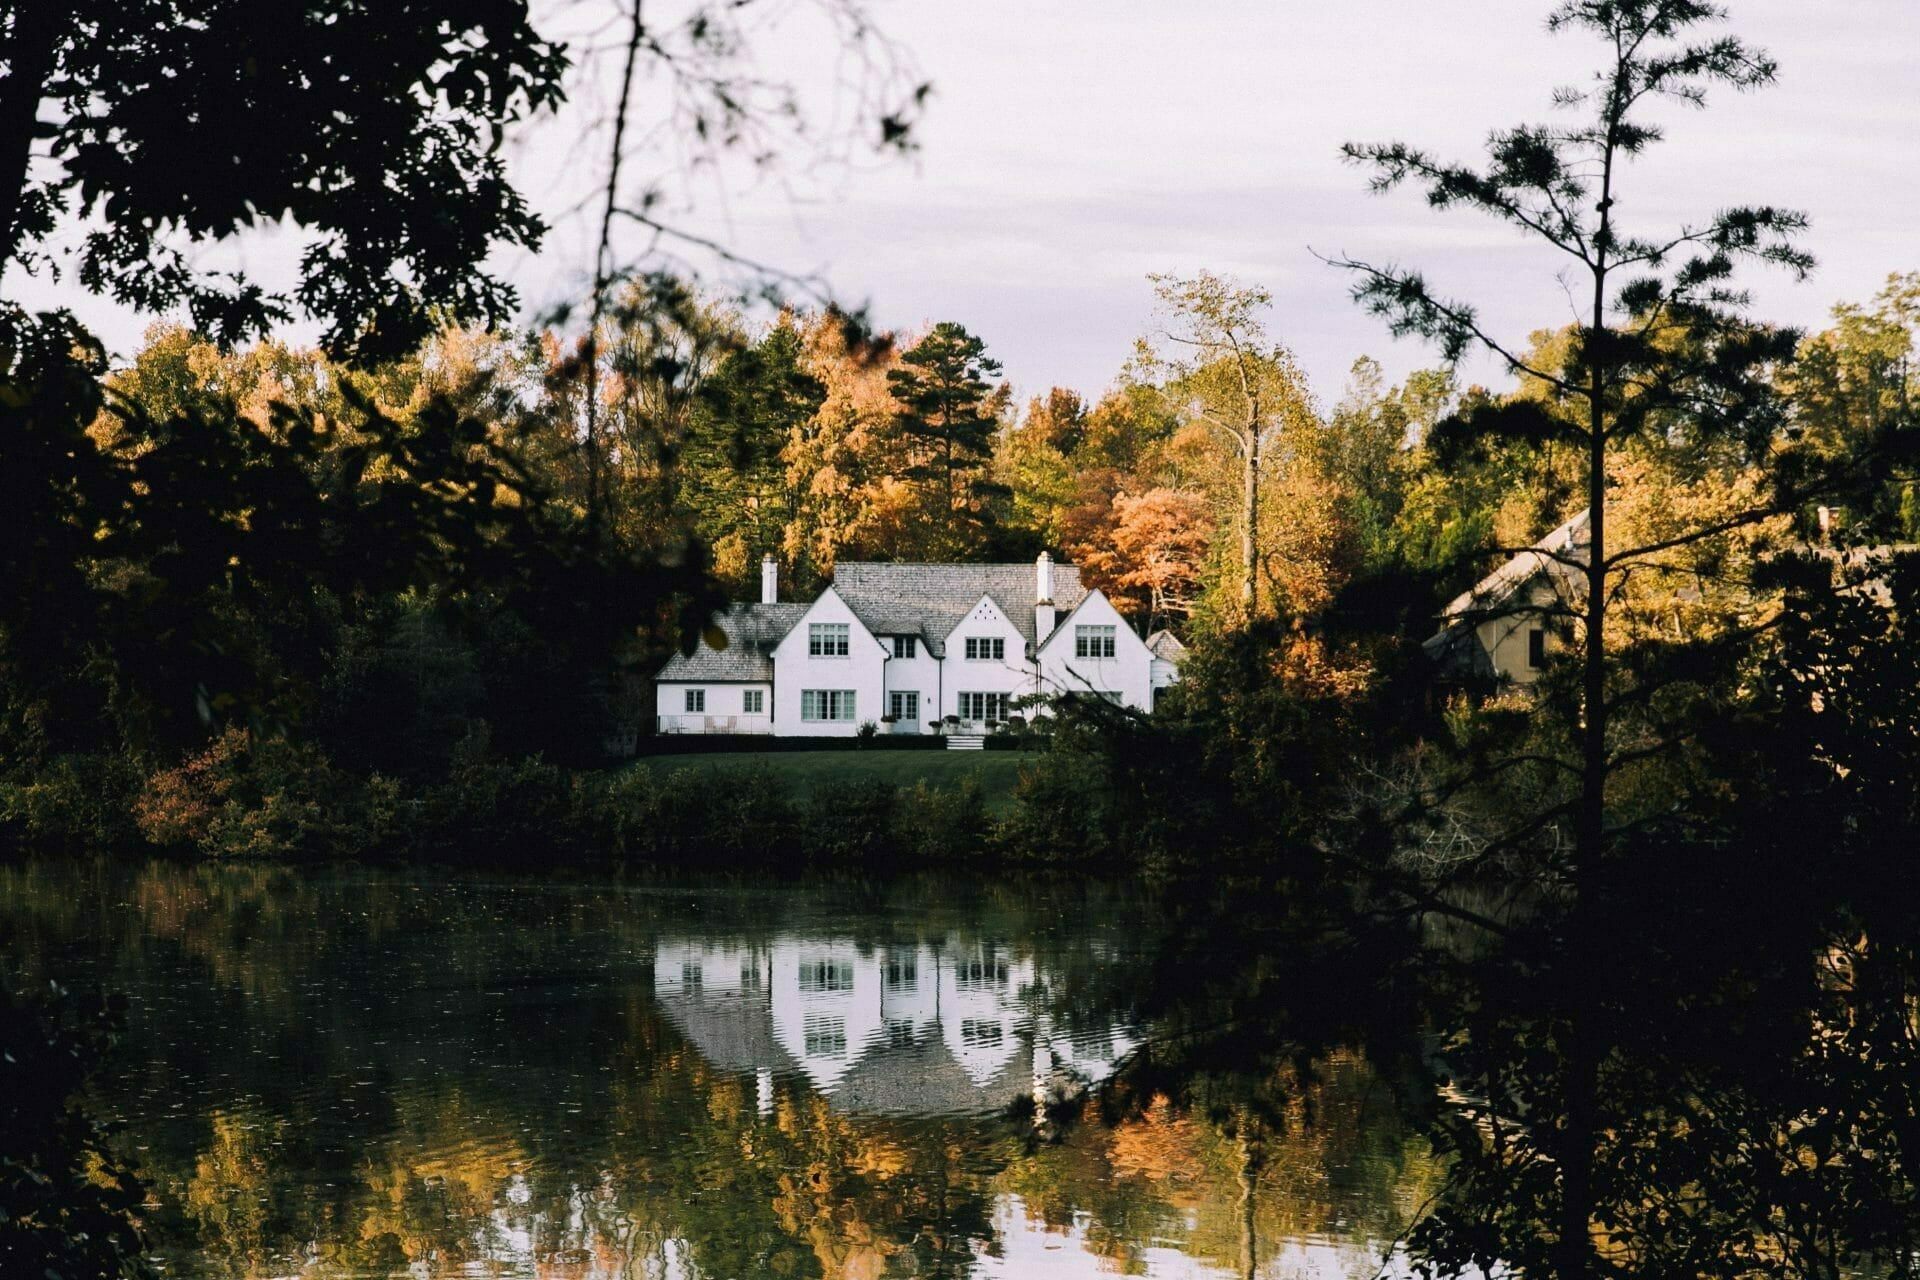 Picture of a White House Next to a Pond for Real Estate News for Investors Podcast Episode #593